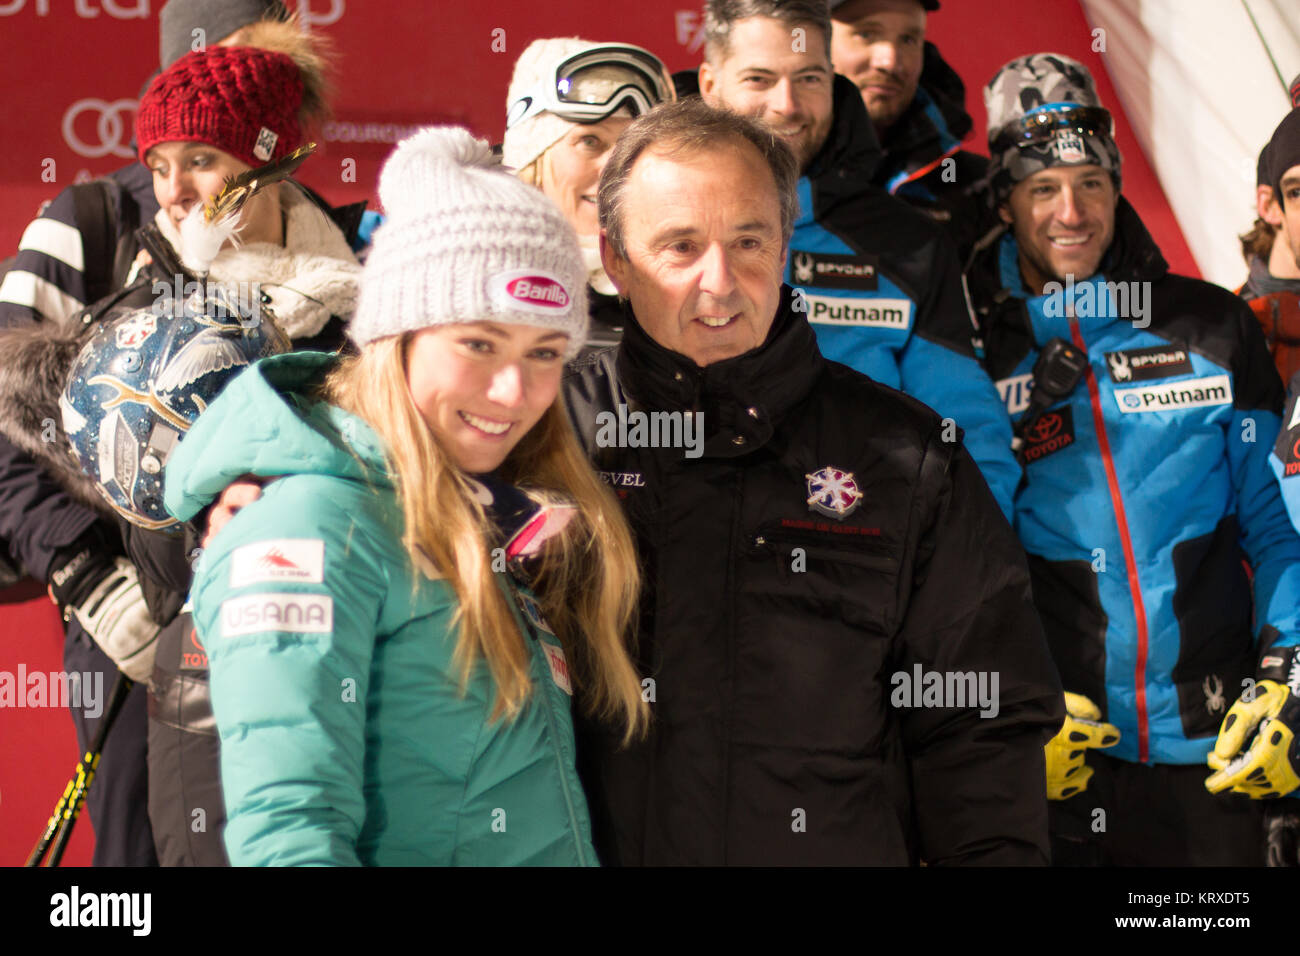 Courchevel, France. 20th Dec, 2017. Mikaela Shiffrin with Philippe Mugnier, maire of Courchevel, taken after her - Stock Image